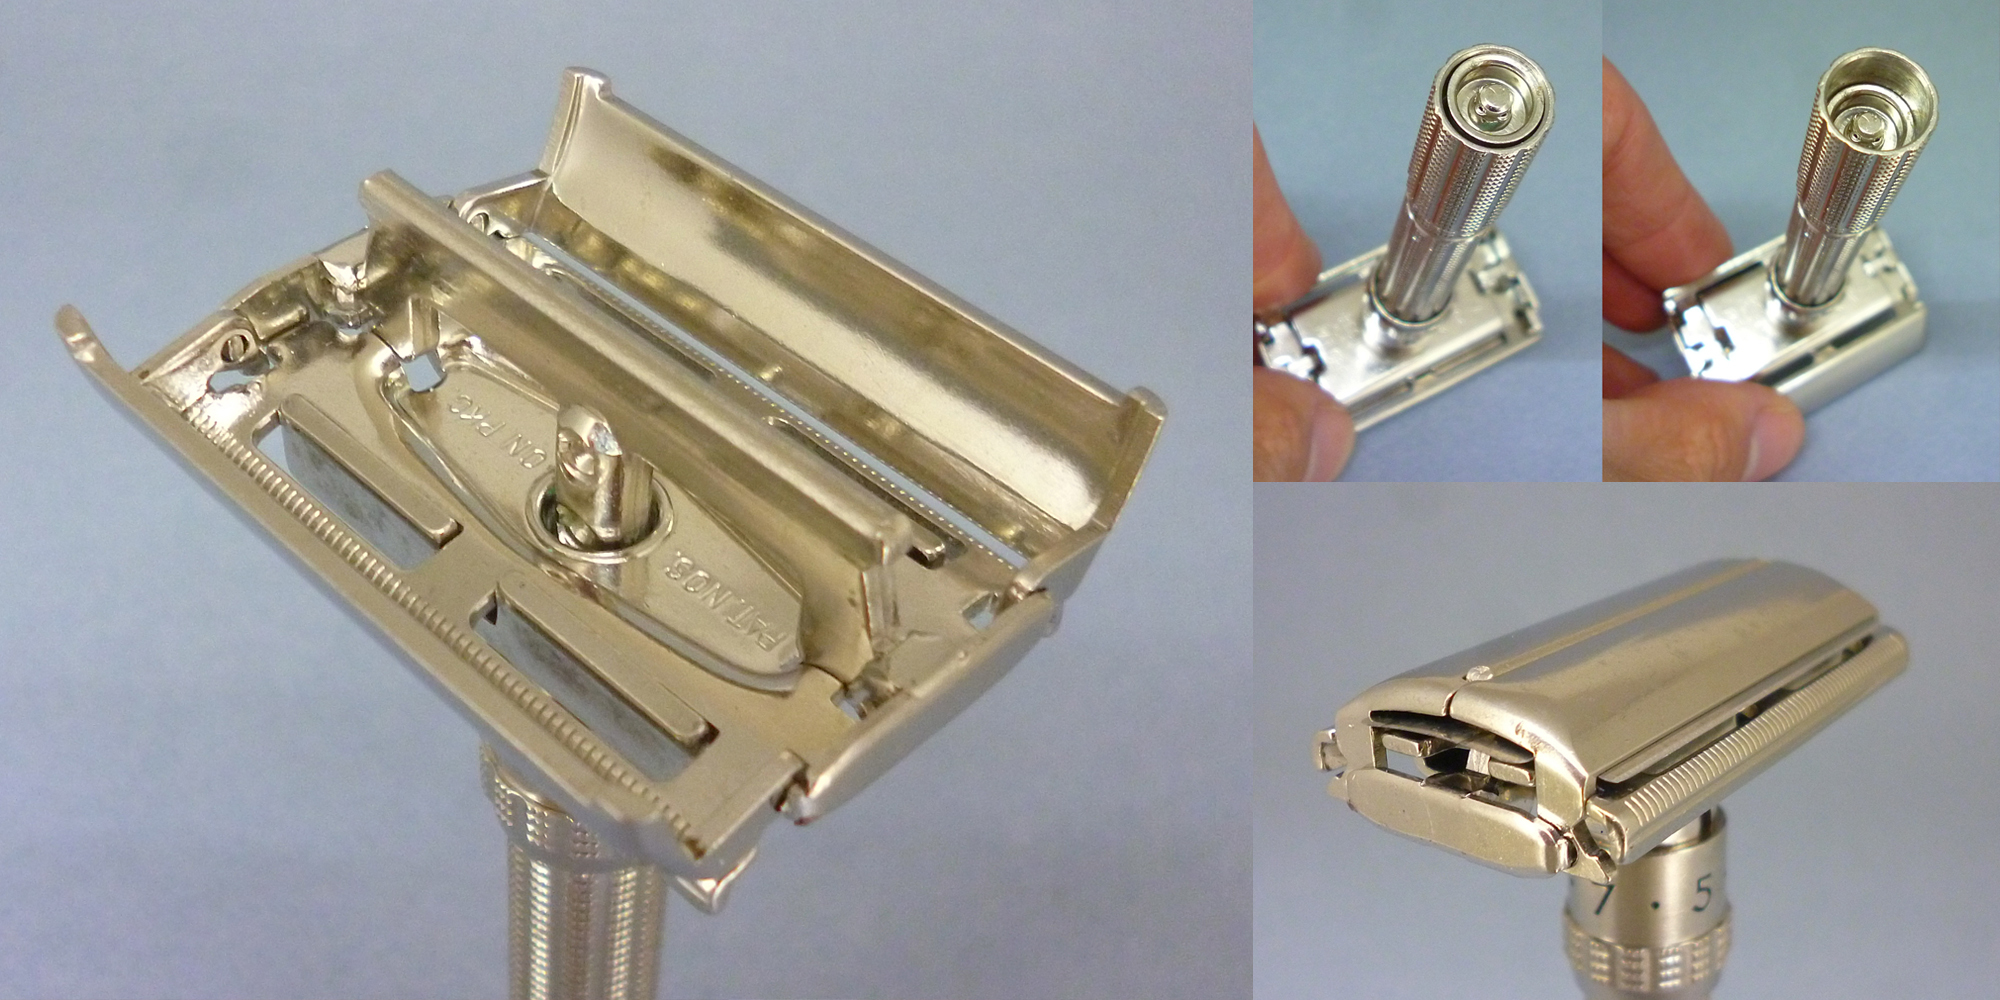 10_Gillette_Slim_restoration_03